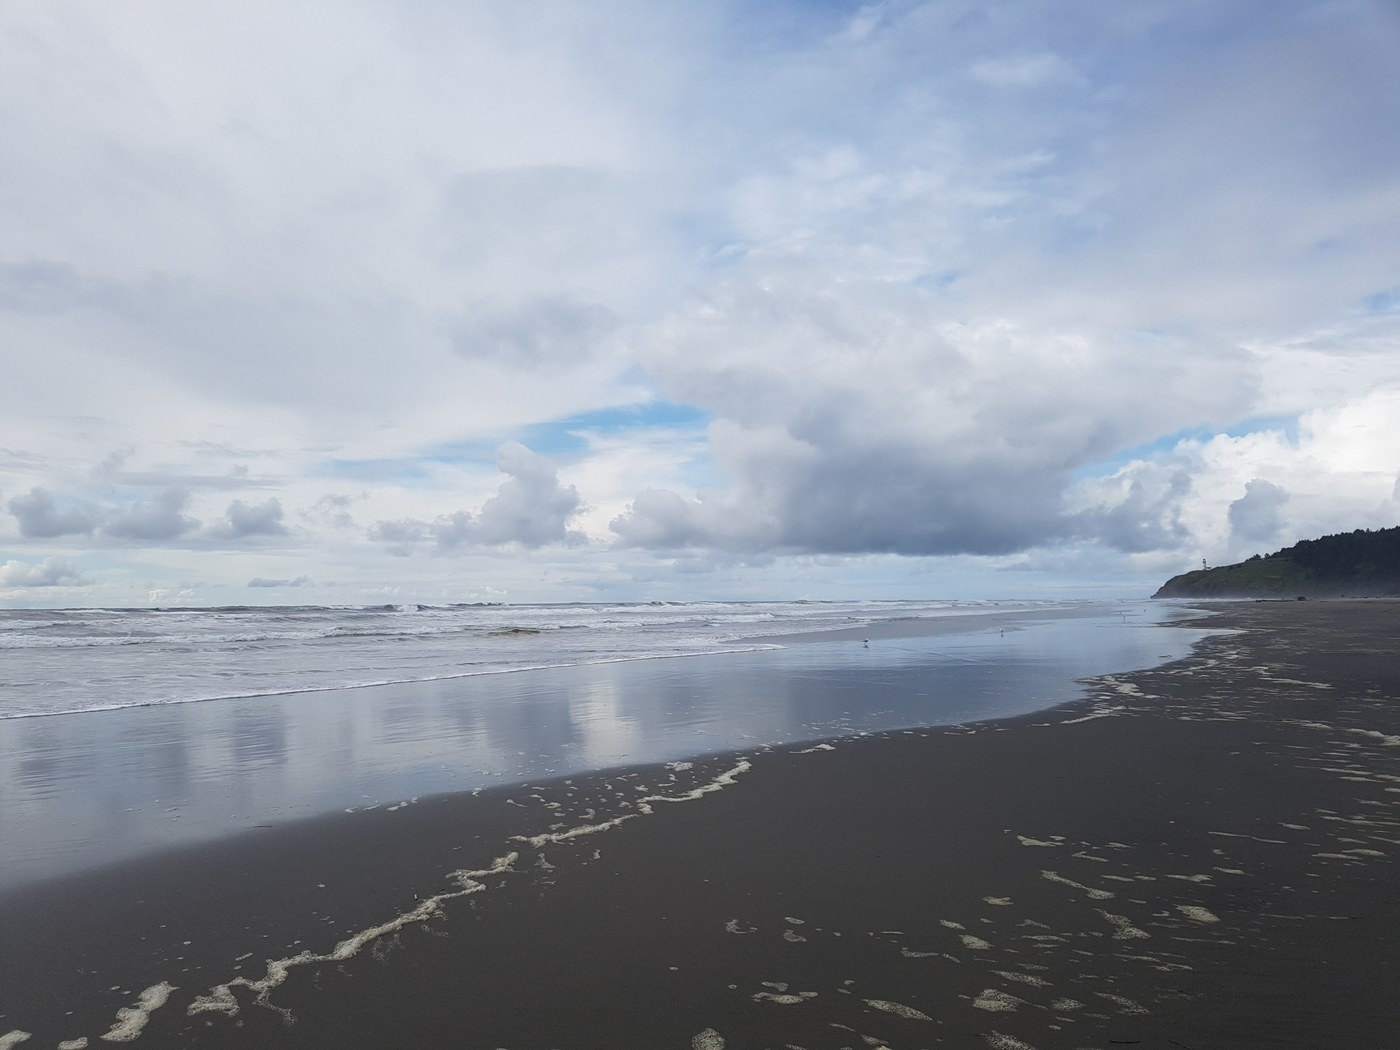 The beach at Cape Disappointment State Park. Photo by wjl8.